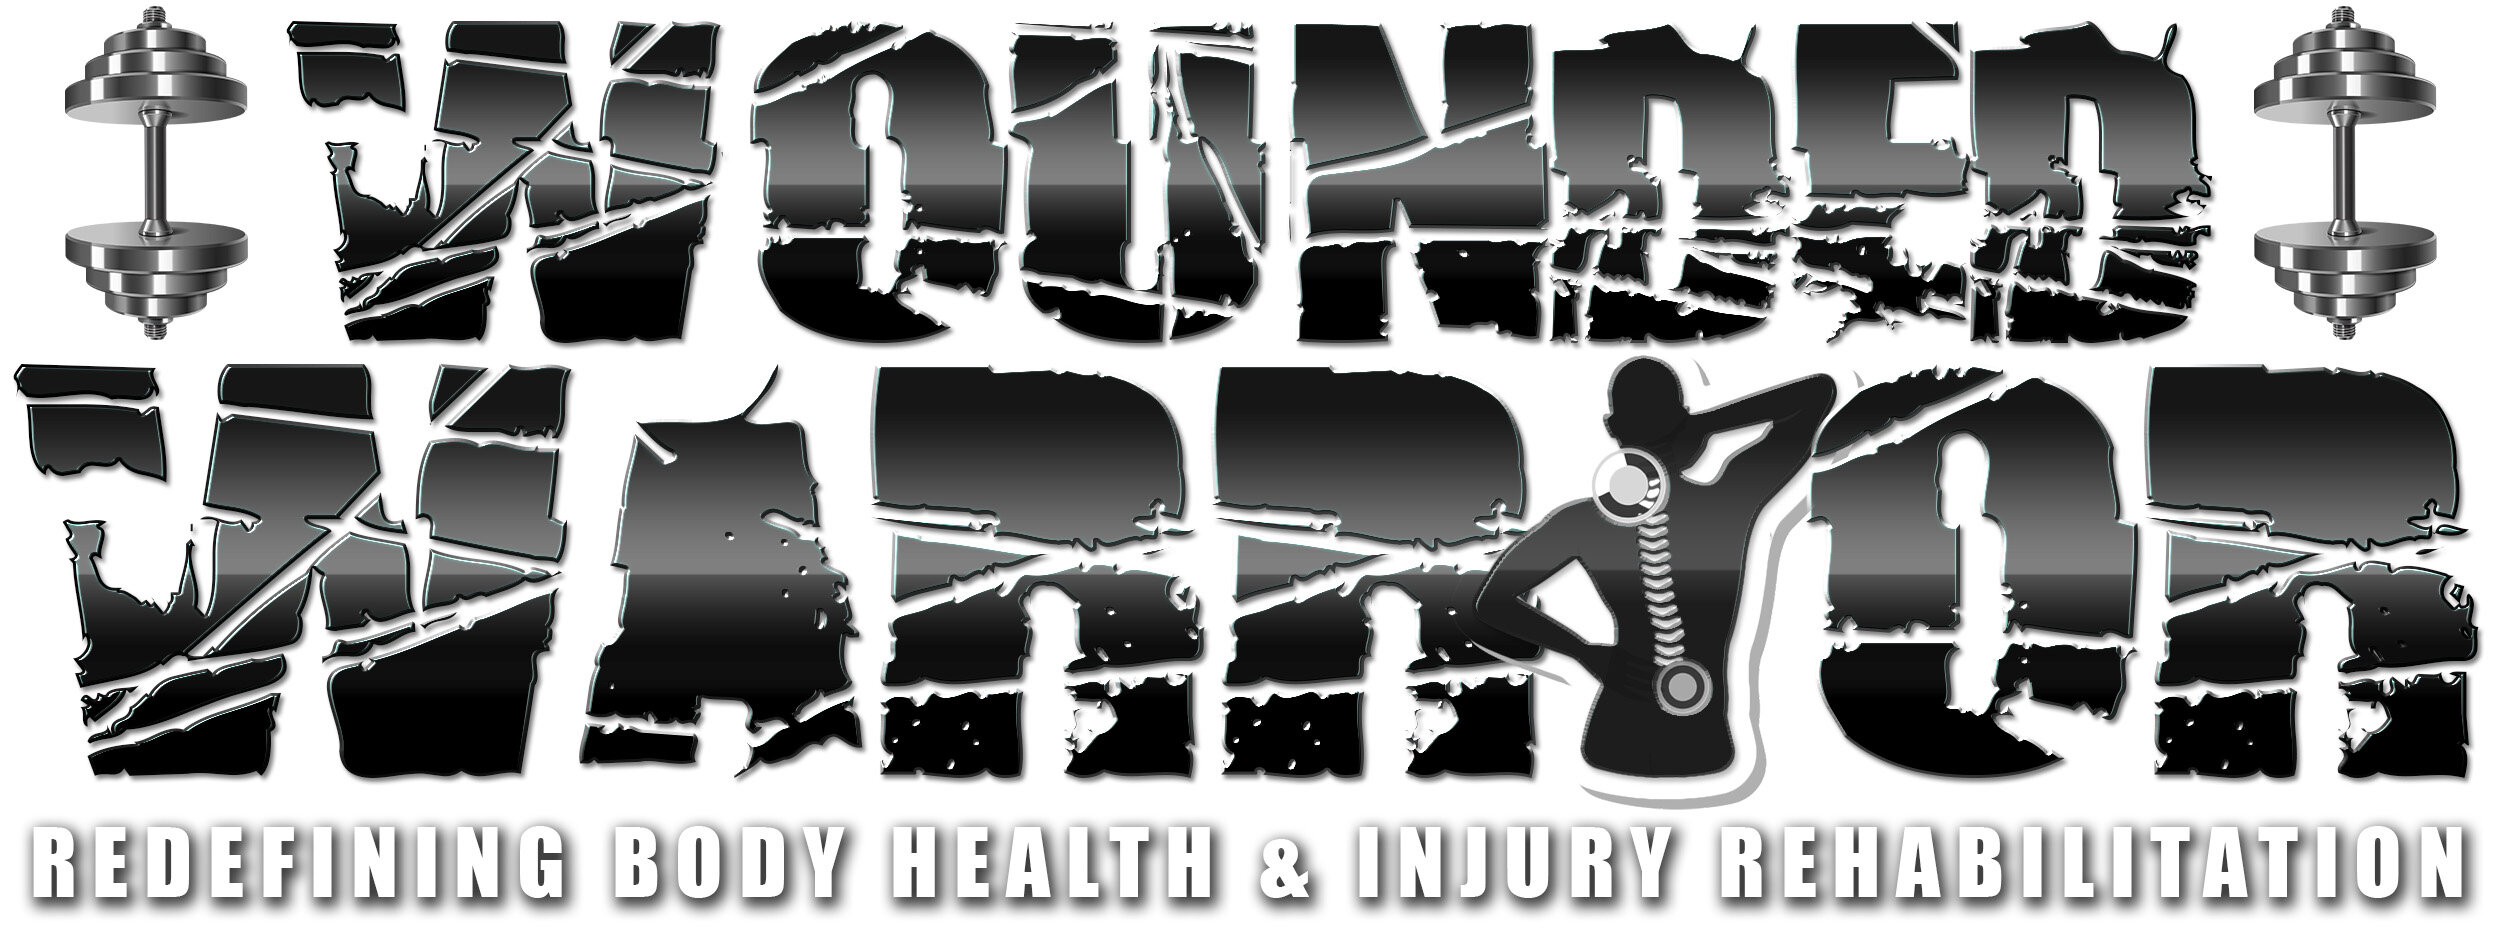 Wounded Warrior Title (AHP).jpg